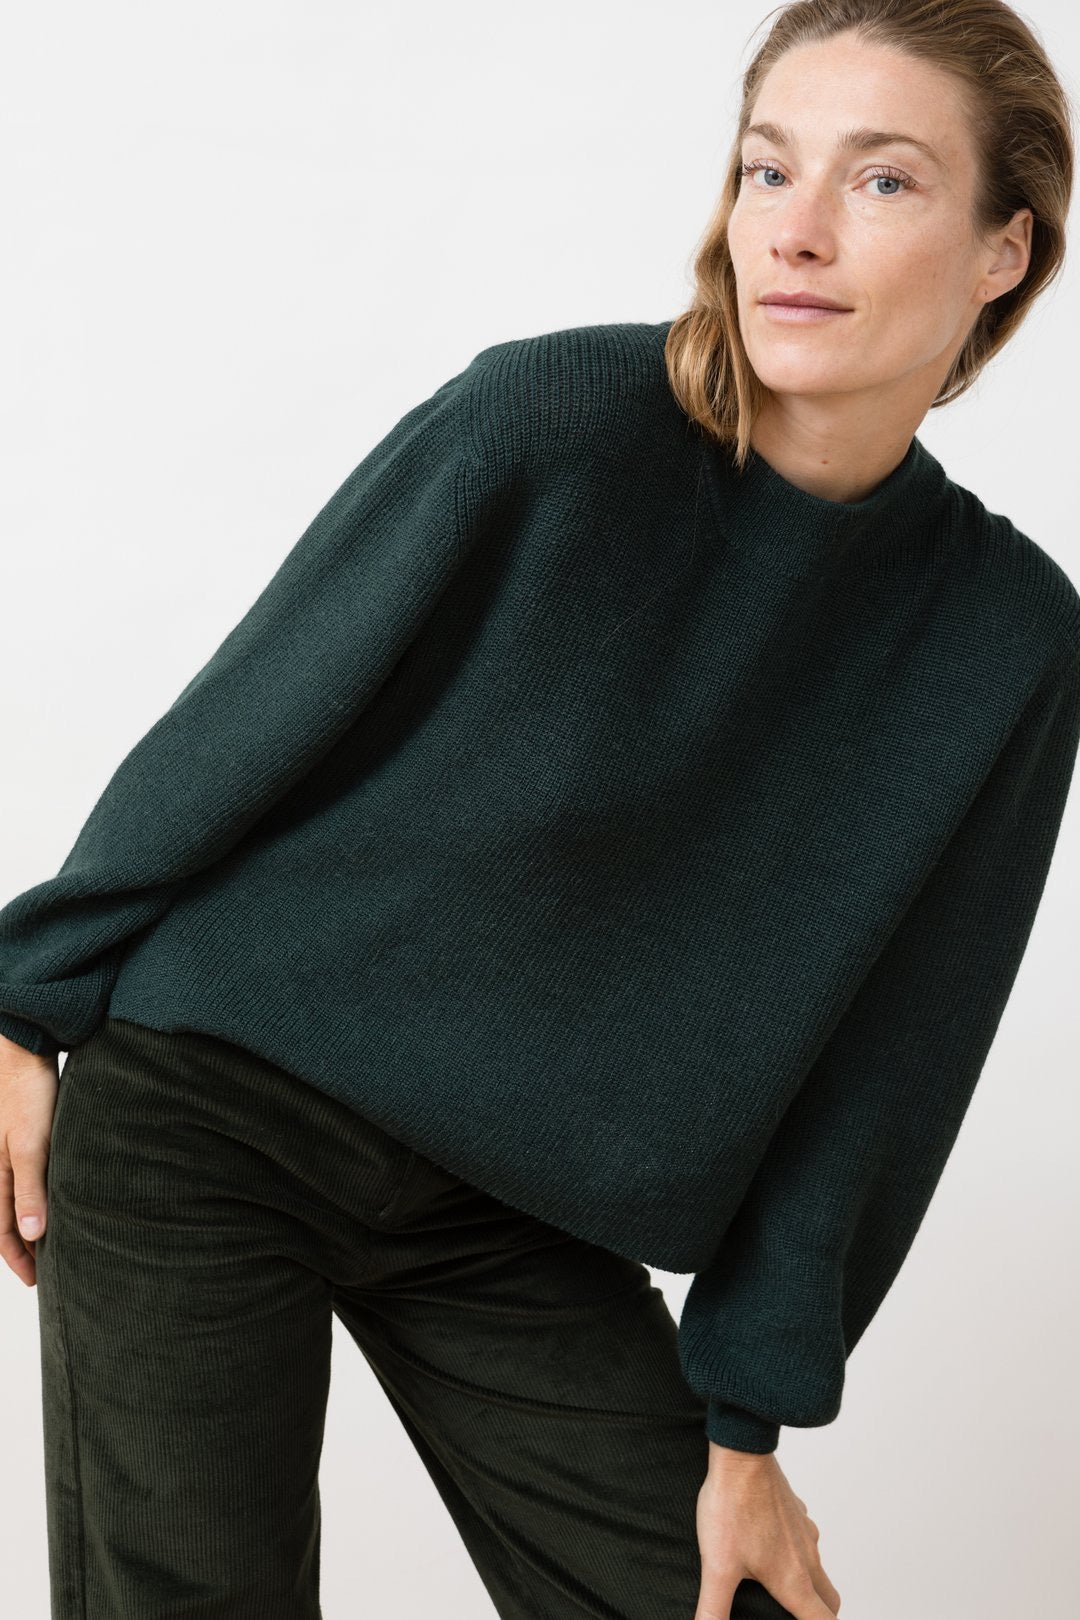 Knit Sweater Helo - Forrest green